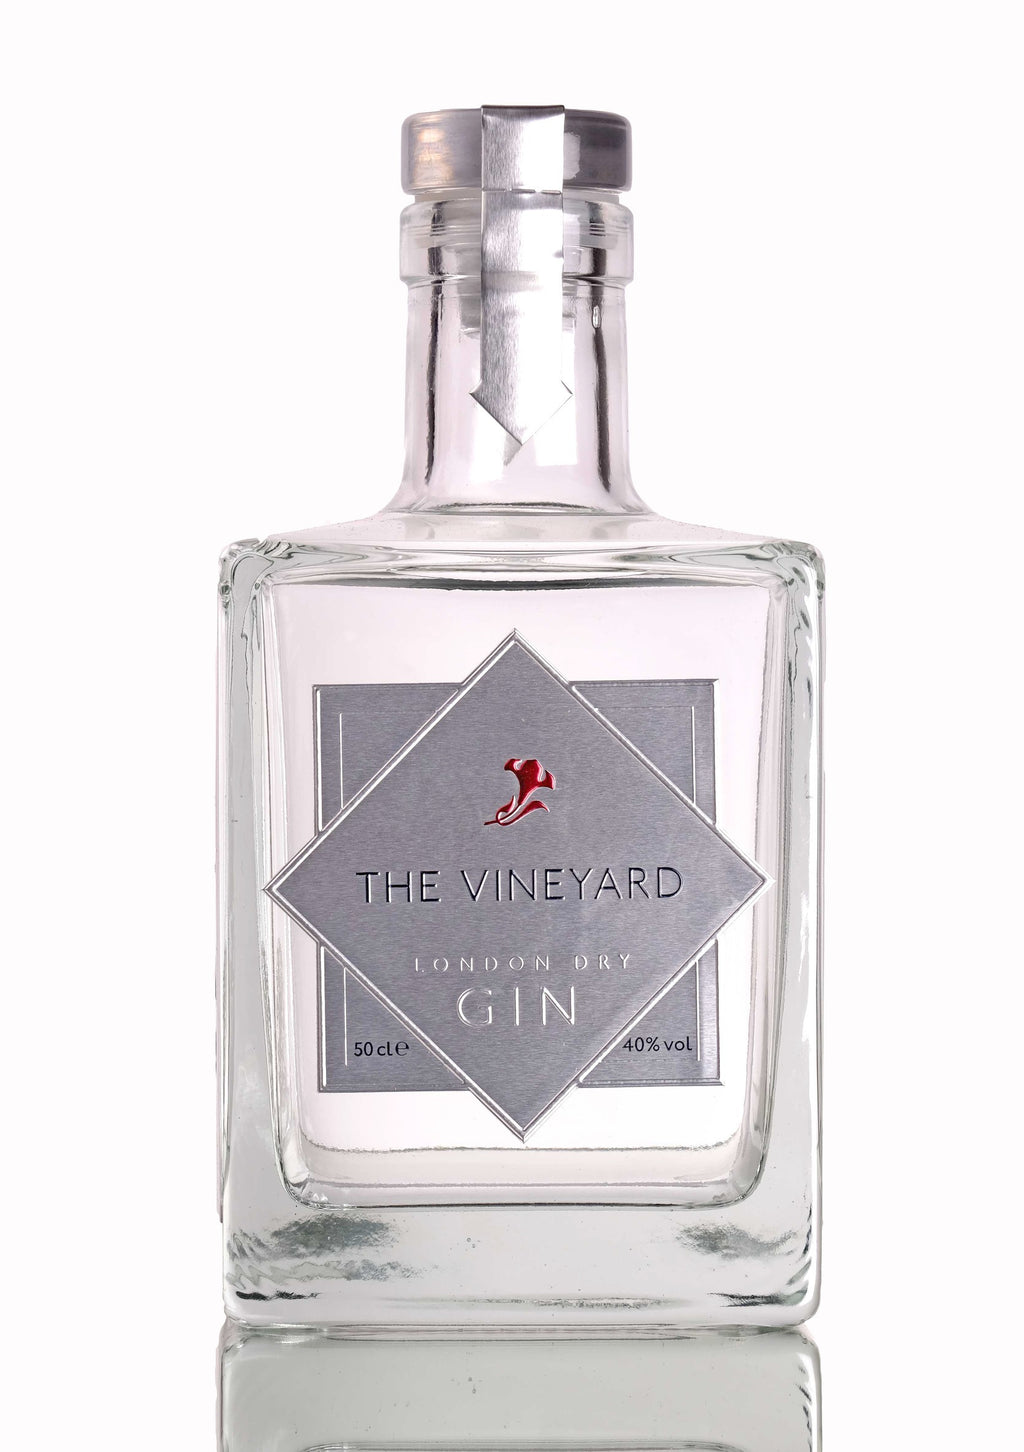 The Vineyard Gin